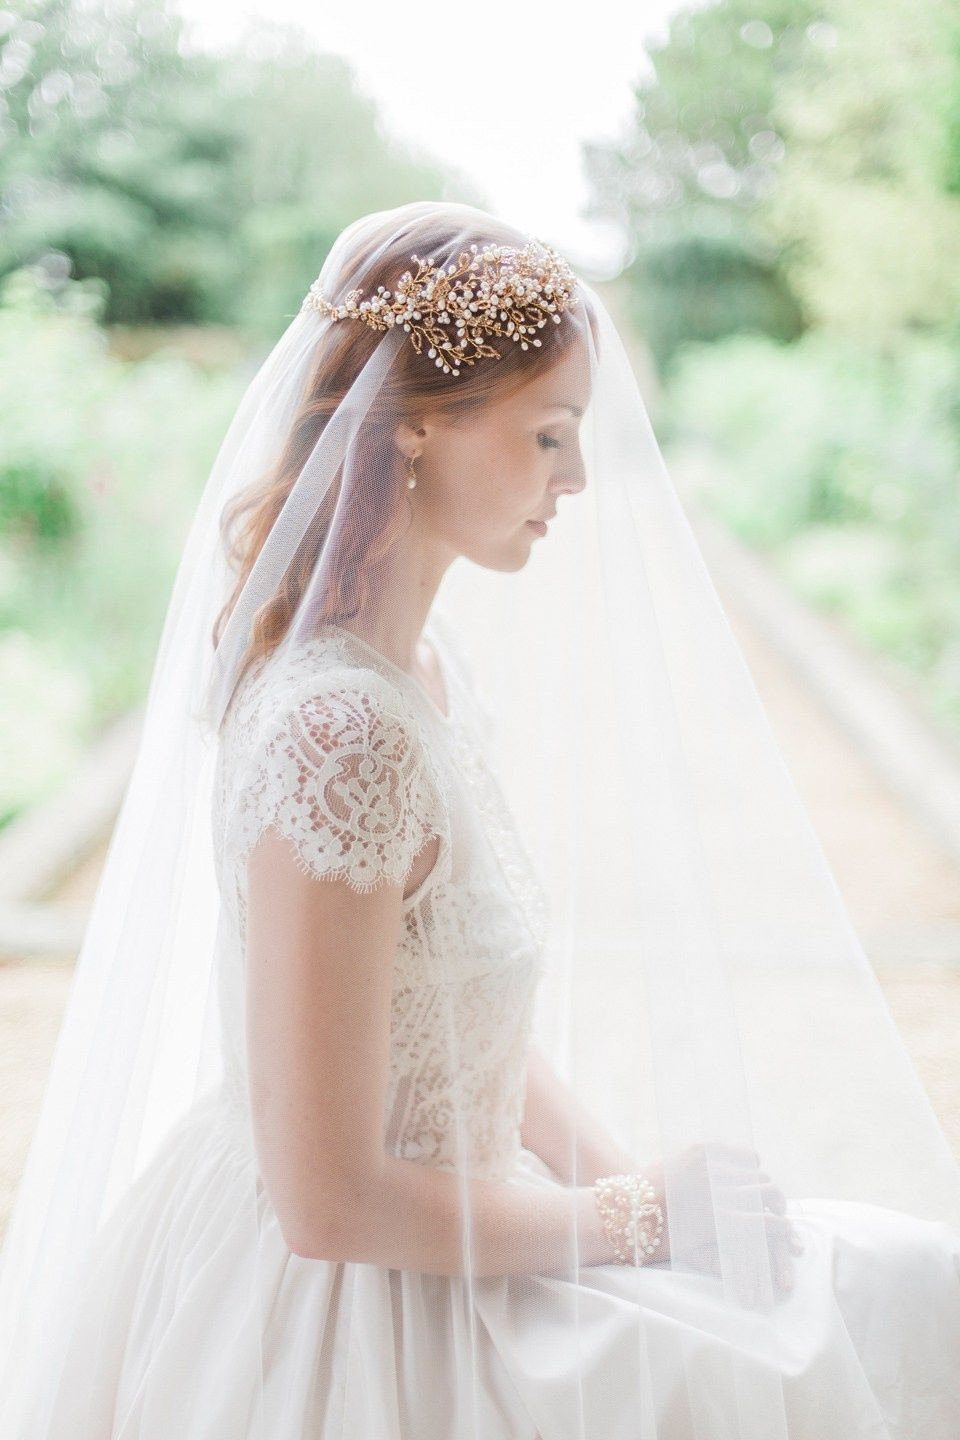 Hermione Harbutt Nature Inspired Hair Vines And Delicate Bridal